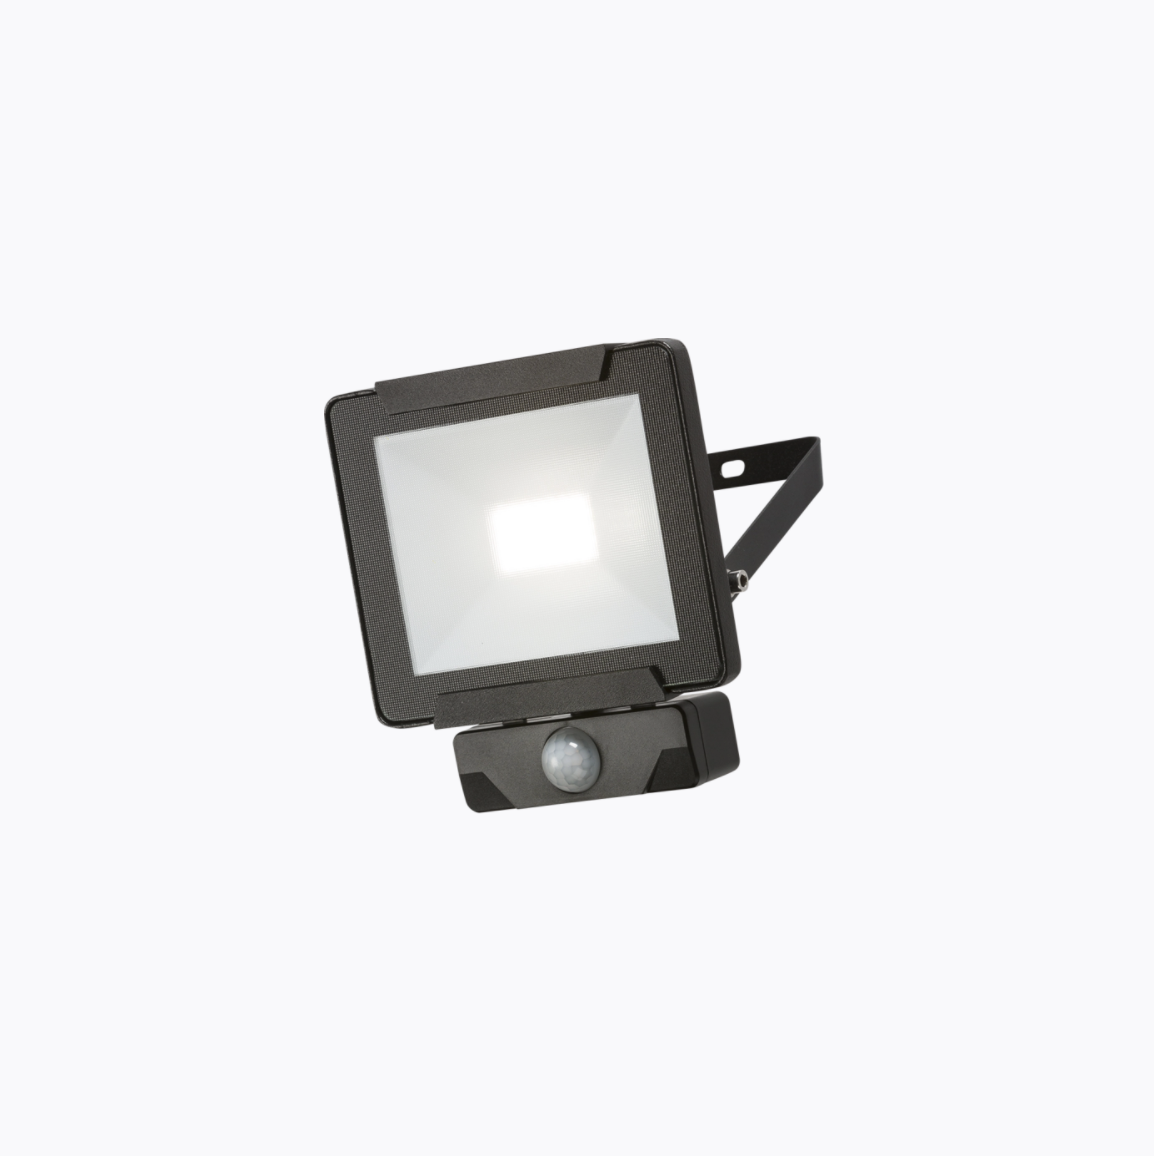 20w 4000K PIR LED Floodlight - ID 10331